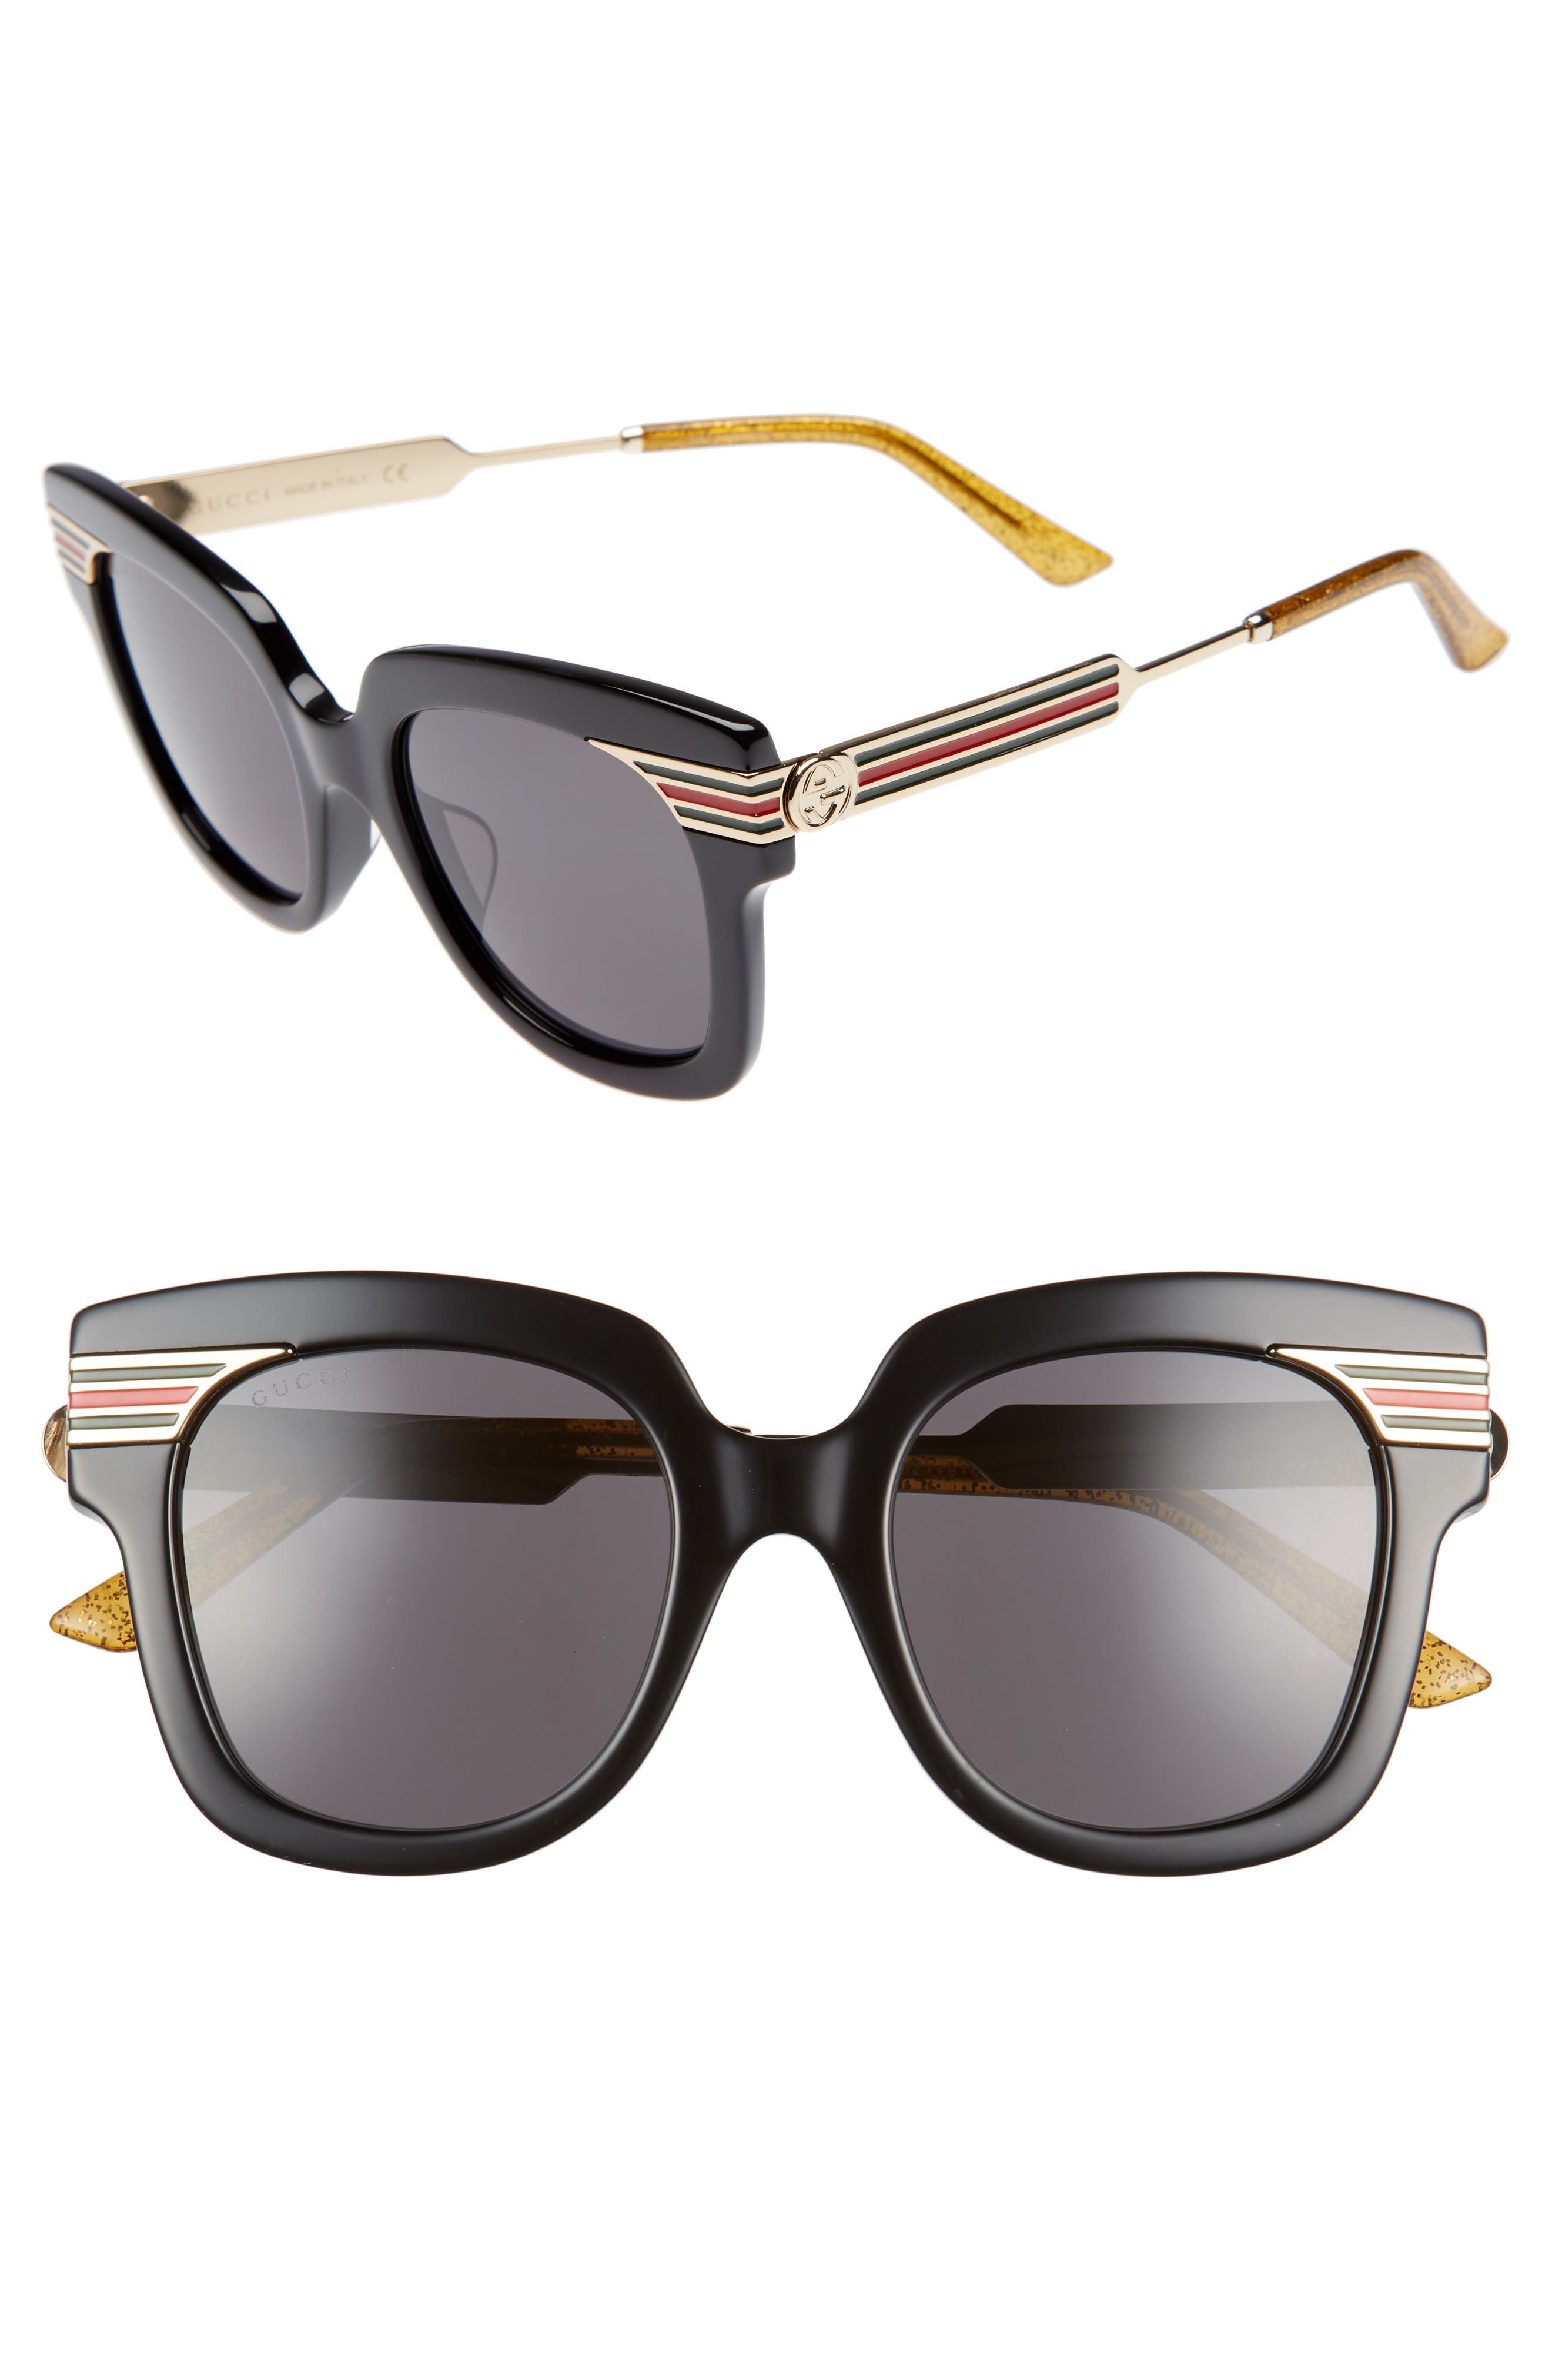 51mm Cat Eye Sunglasses,                         Main,                         color, Black/ Gold